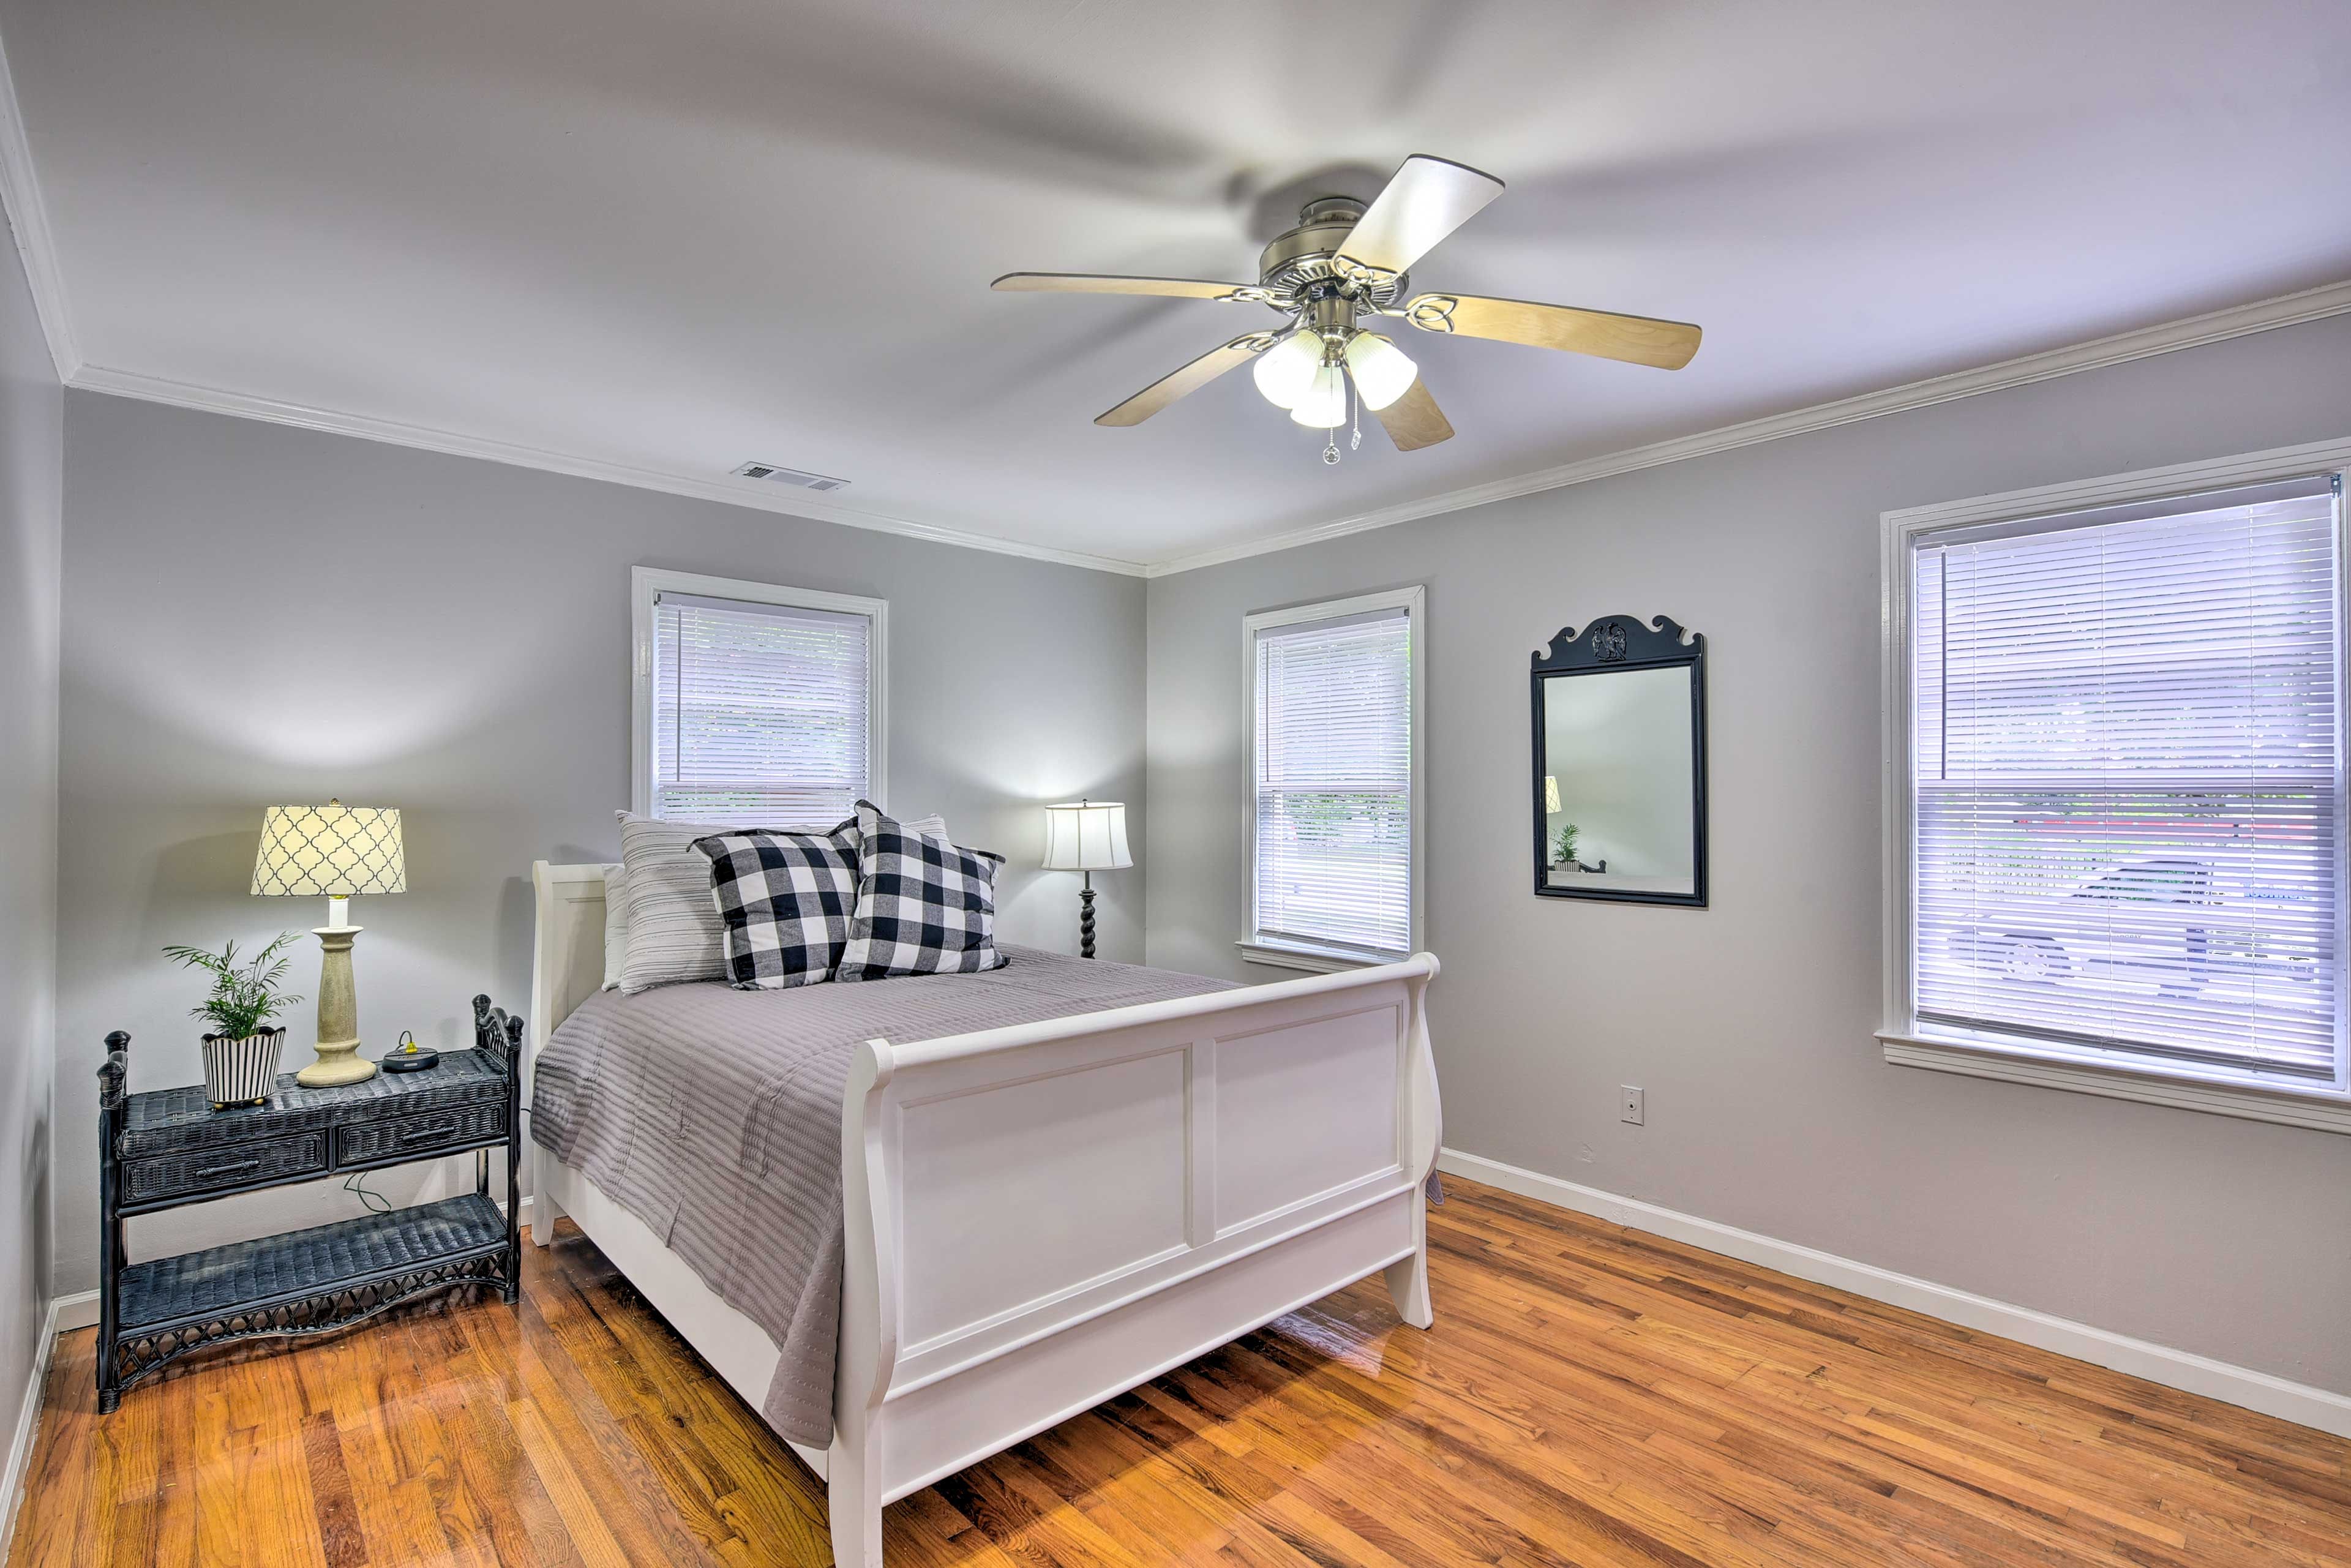 The master bedroom features a queen bed for a tired traveler.